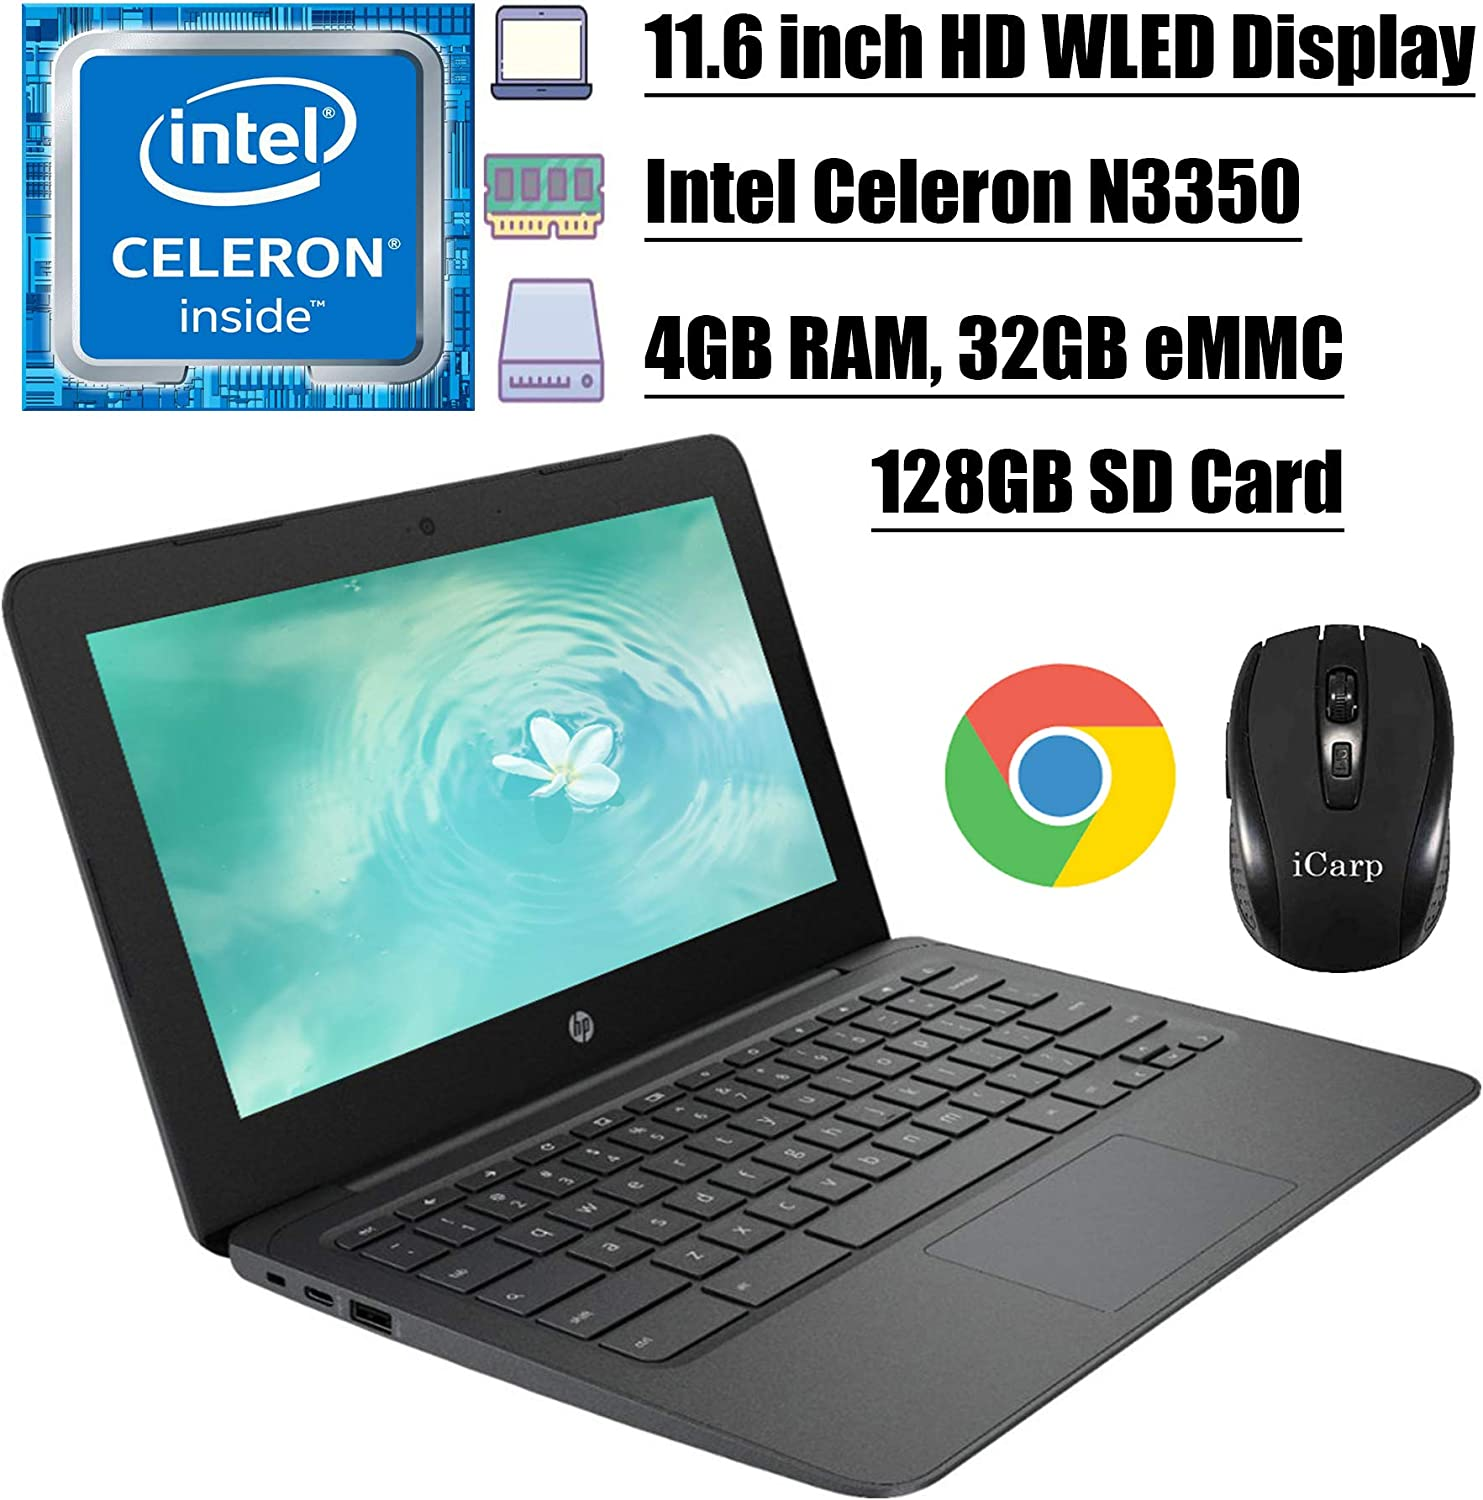 2020 Premium HP Chromebook 11 Latop Computer 11.6 inch HD WLED Display Intel Celeron Processor N3350 4GB DDR4 32GB eMMC + 128GB SD Card Type C Webcam WiFi Chrome OS + iCarp Wireless Mouse